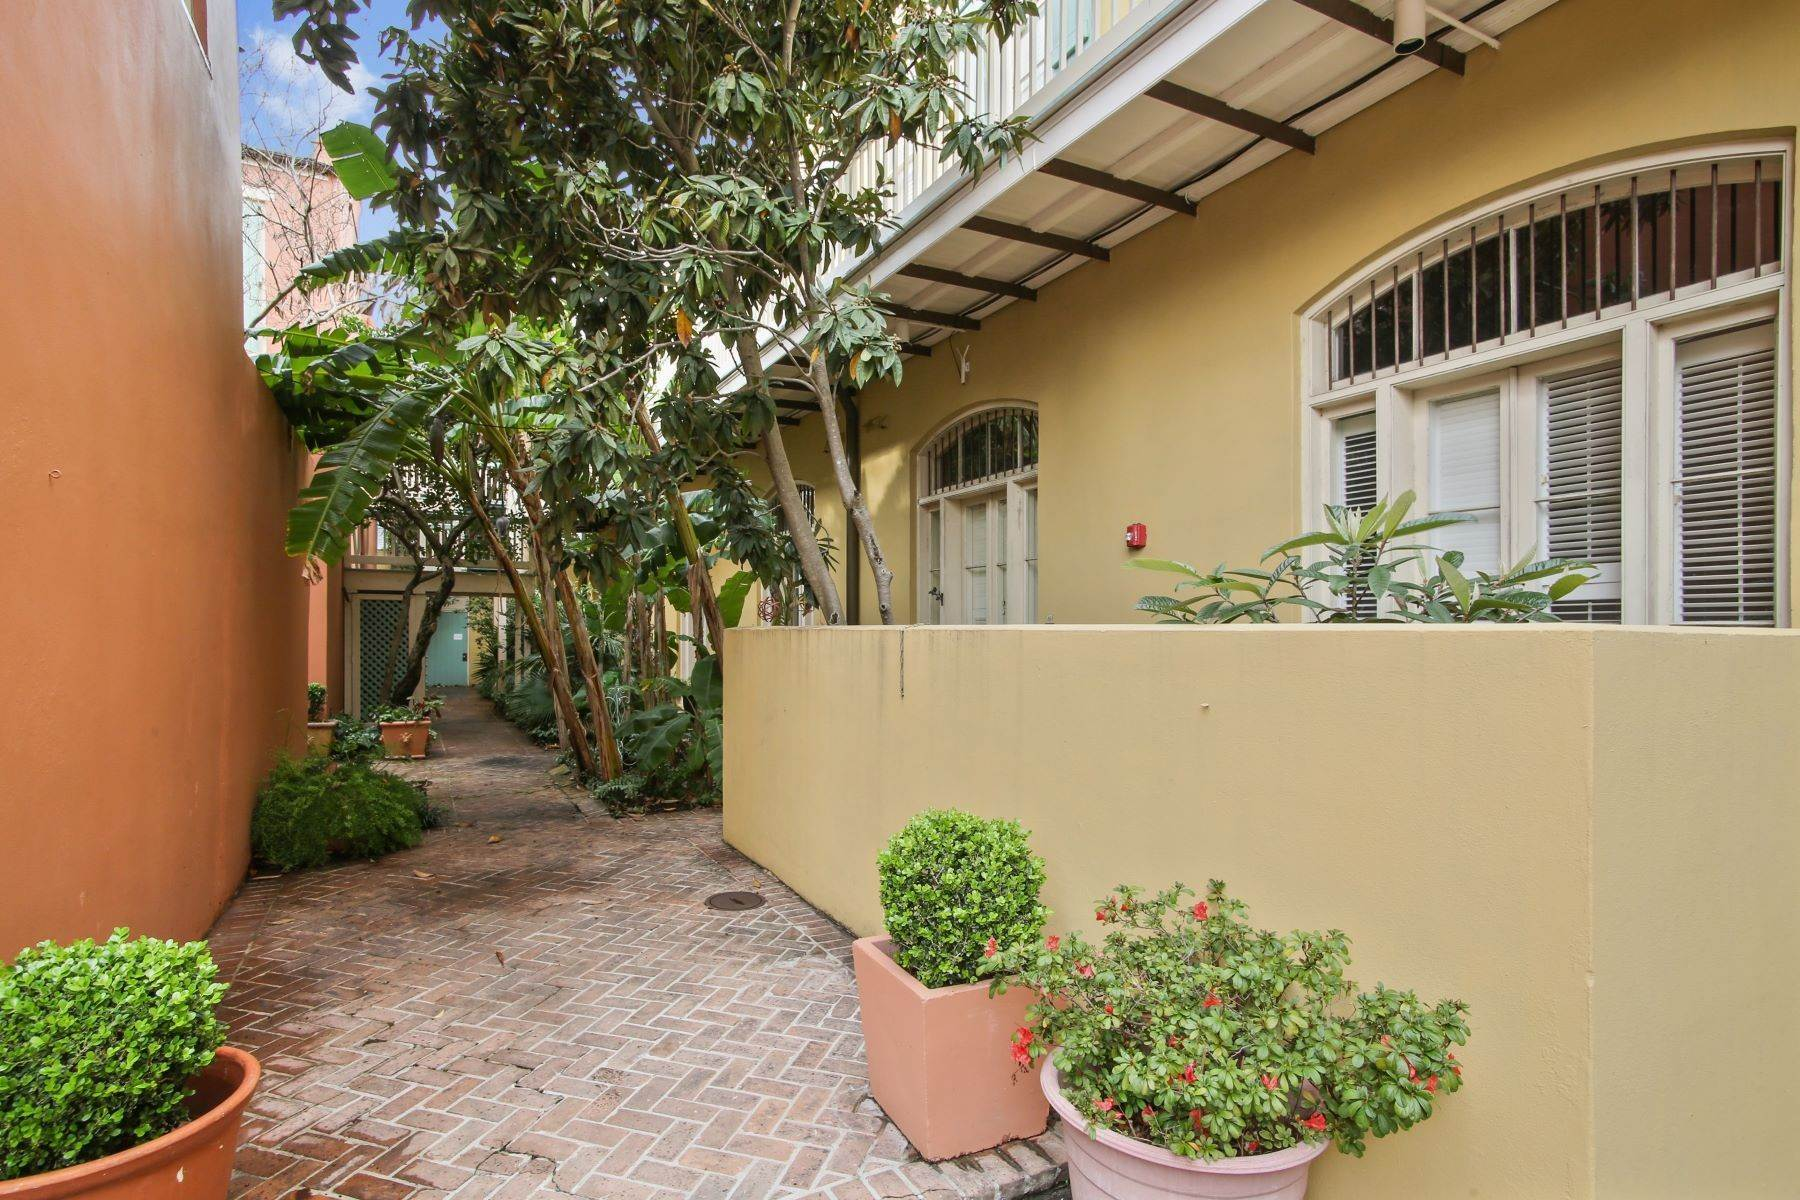 6. Condominiums for Sale at 1040 Chartres Street, C6 1040 Chartres St, C6 New Orleans, Louisiana 70116 United States